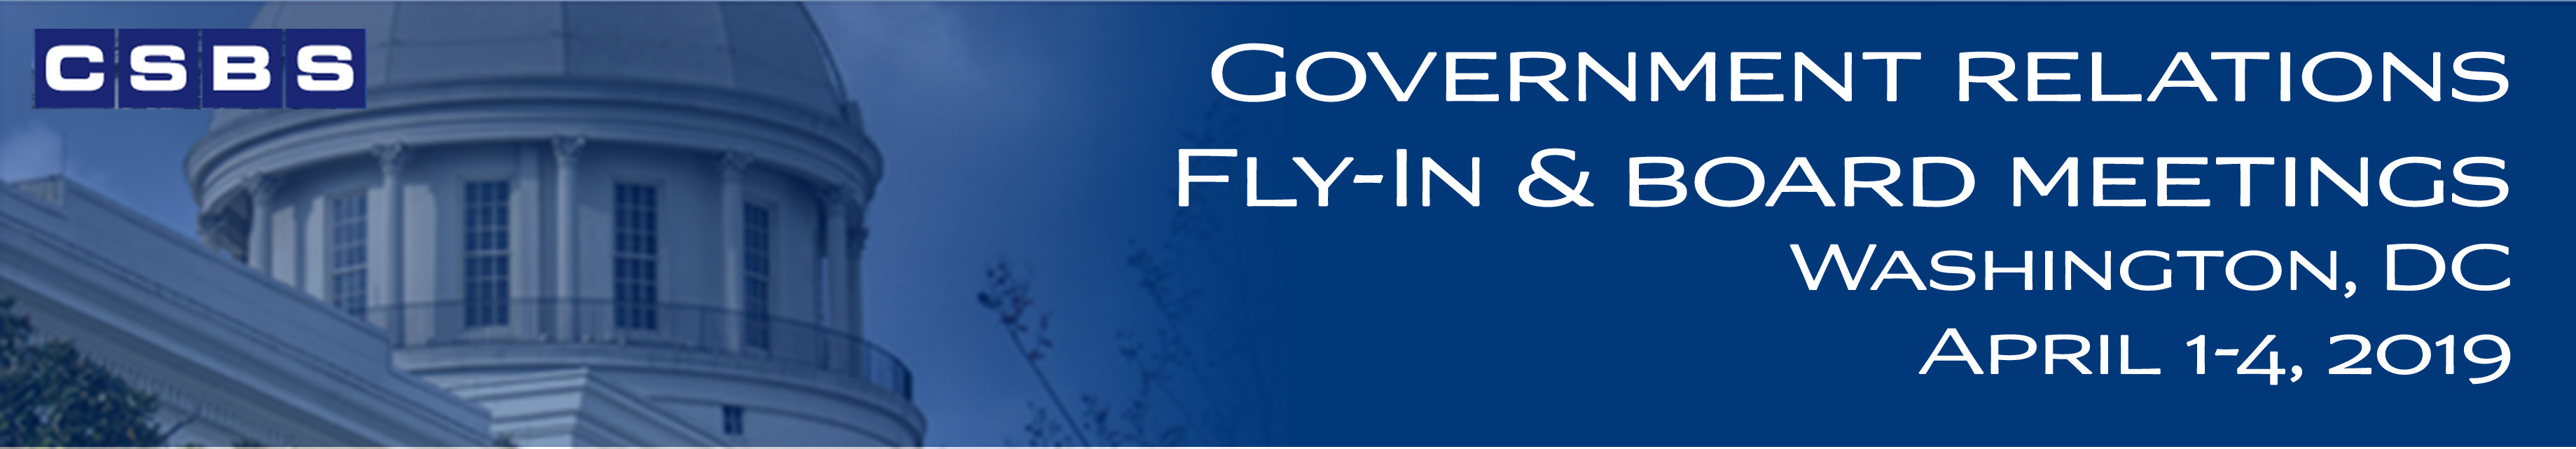 2019 CSBS Government Relations Fly-In and Board Meetings